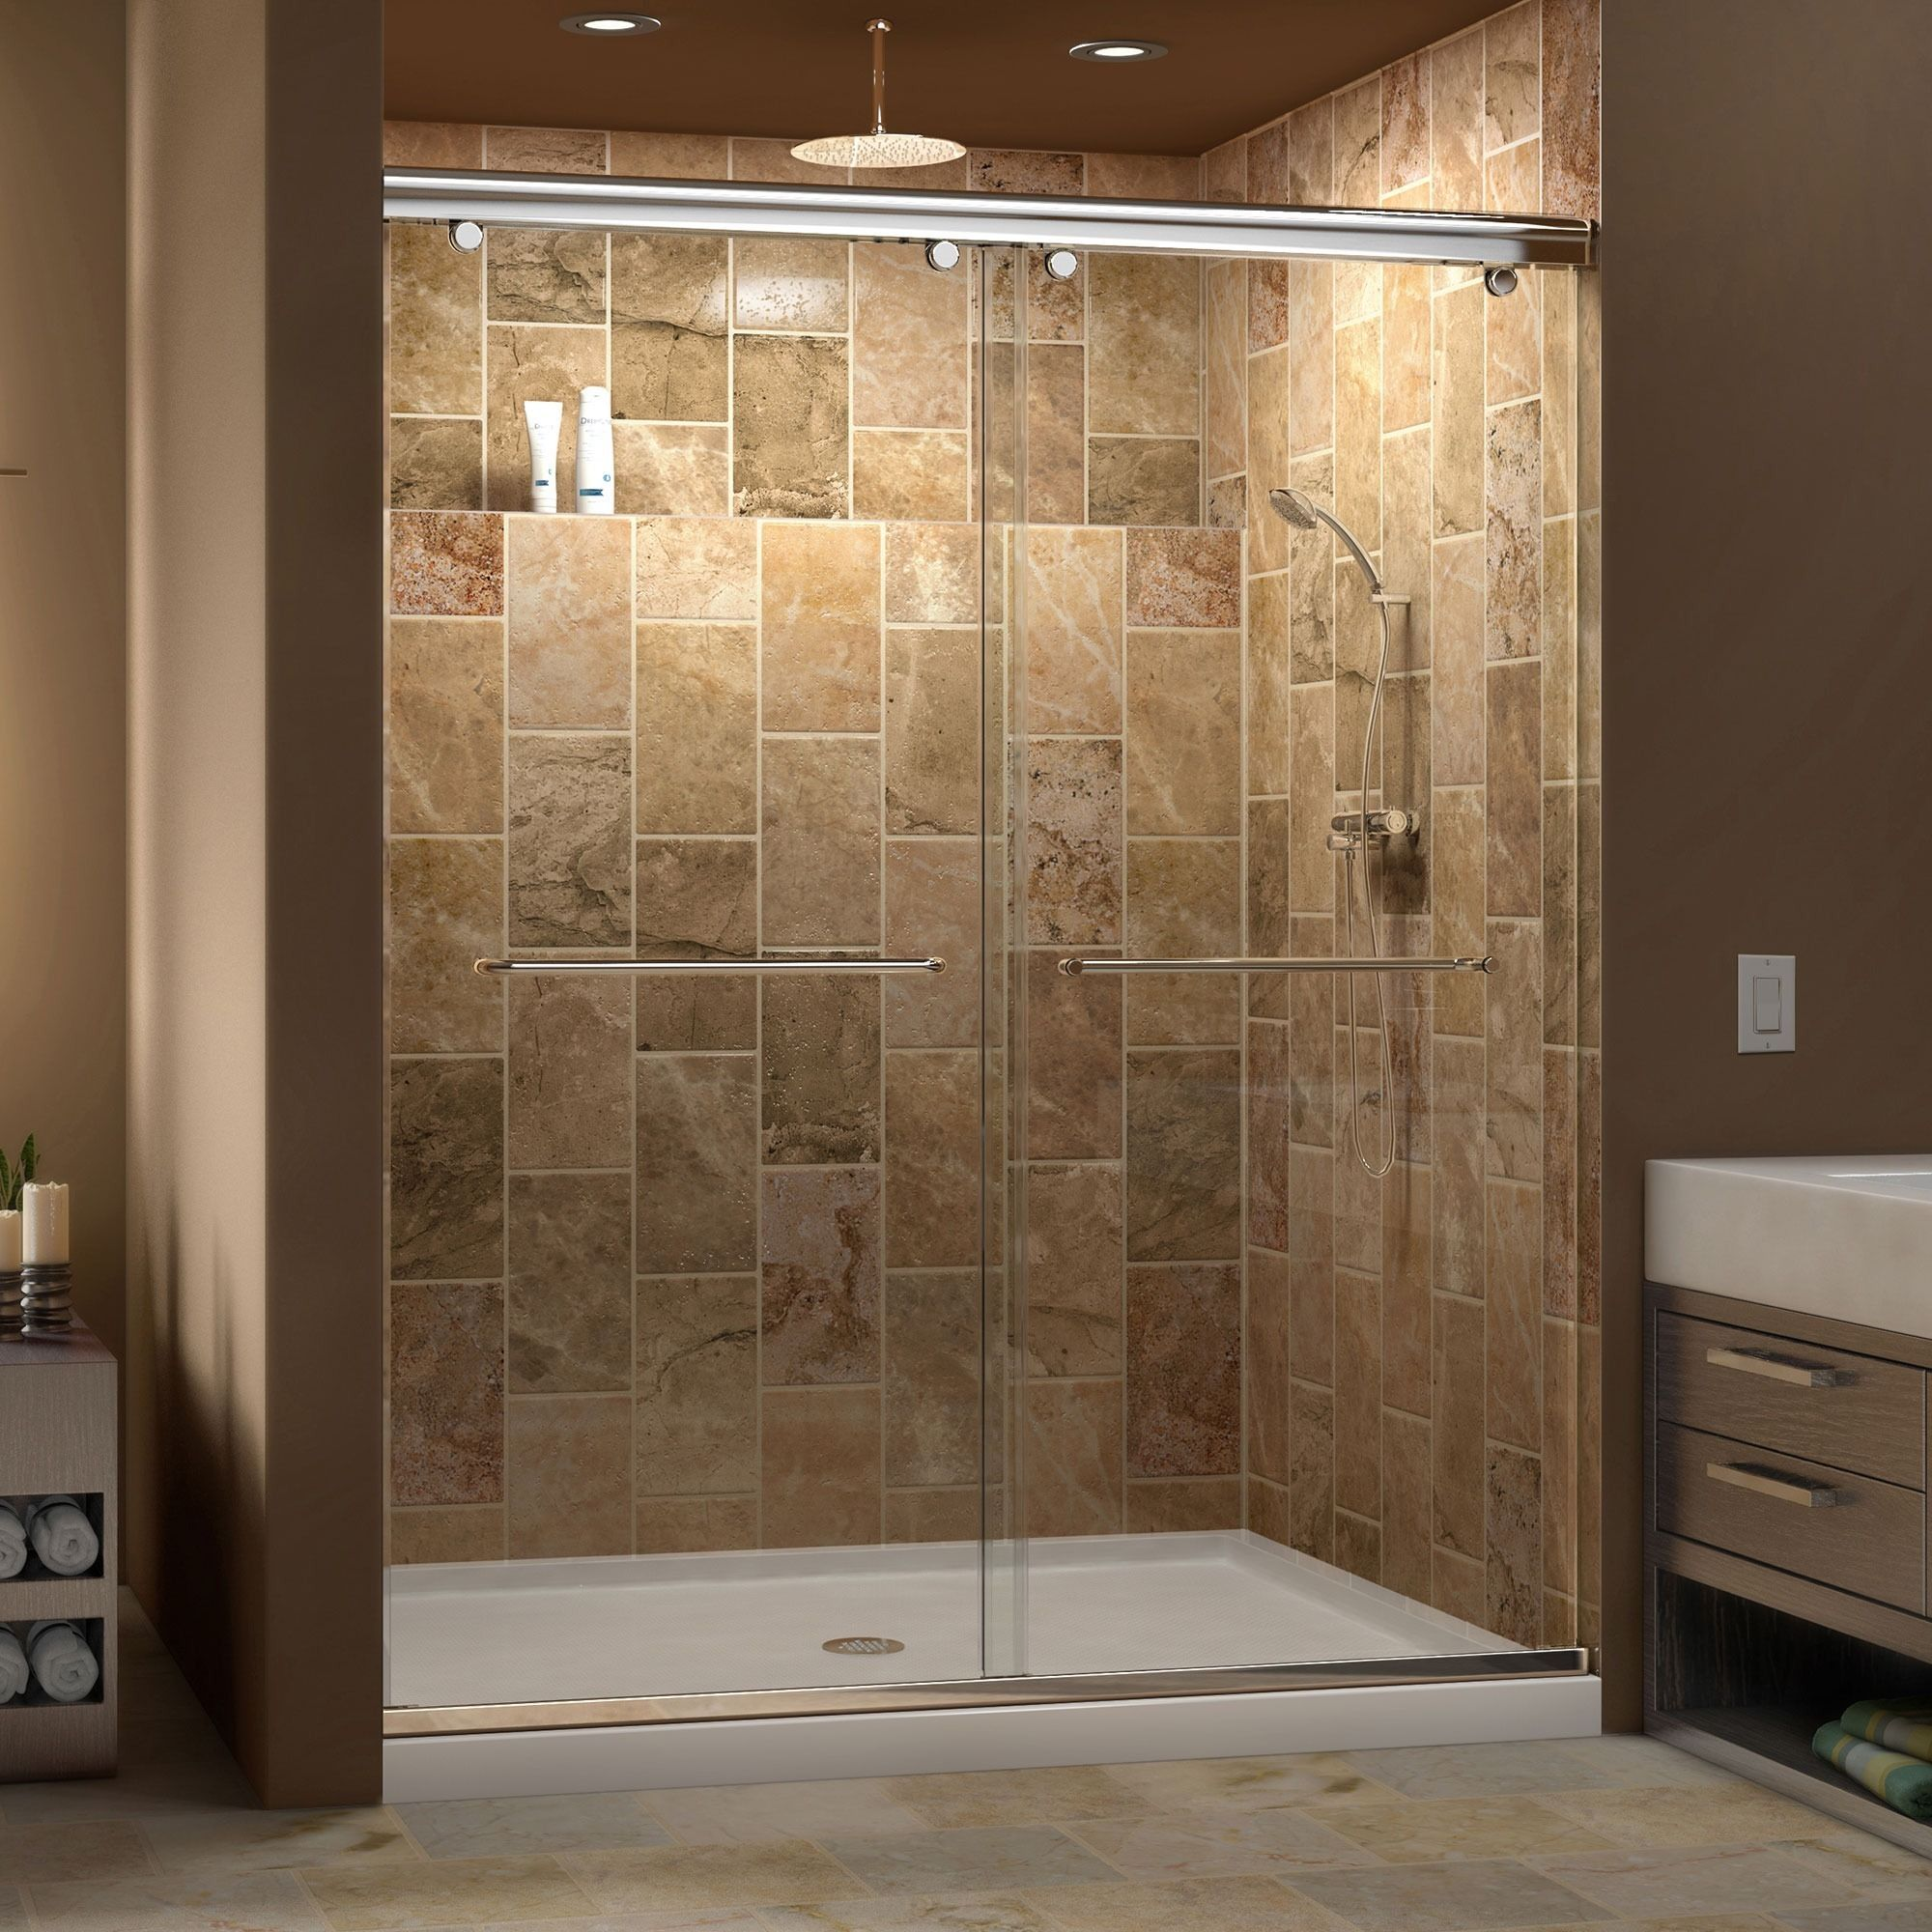 DreamLine Charisma Frameless Bypass Sliding Shower Door And SlimLine 34 X  60 Inch Single Threshold Shower Base